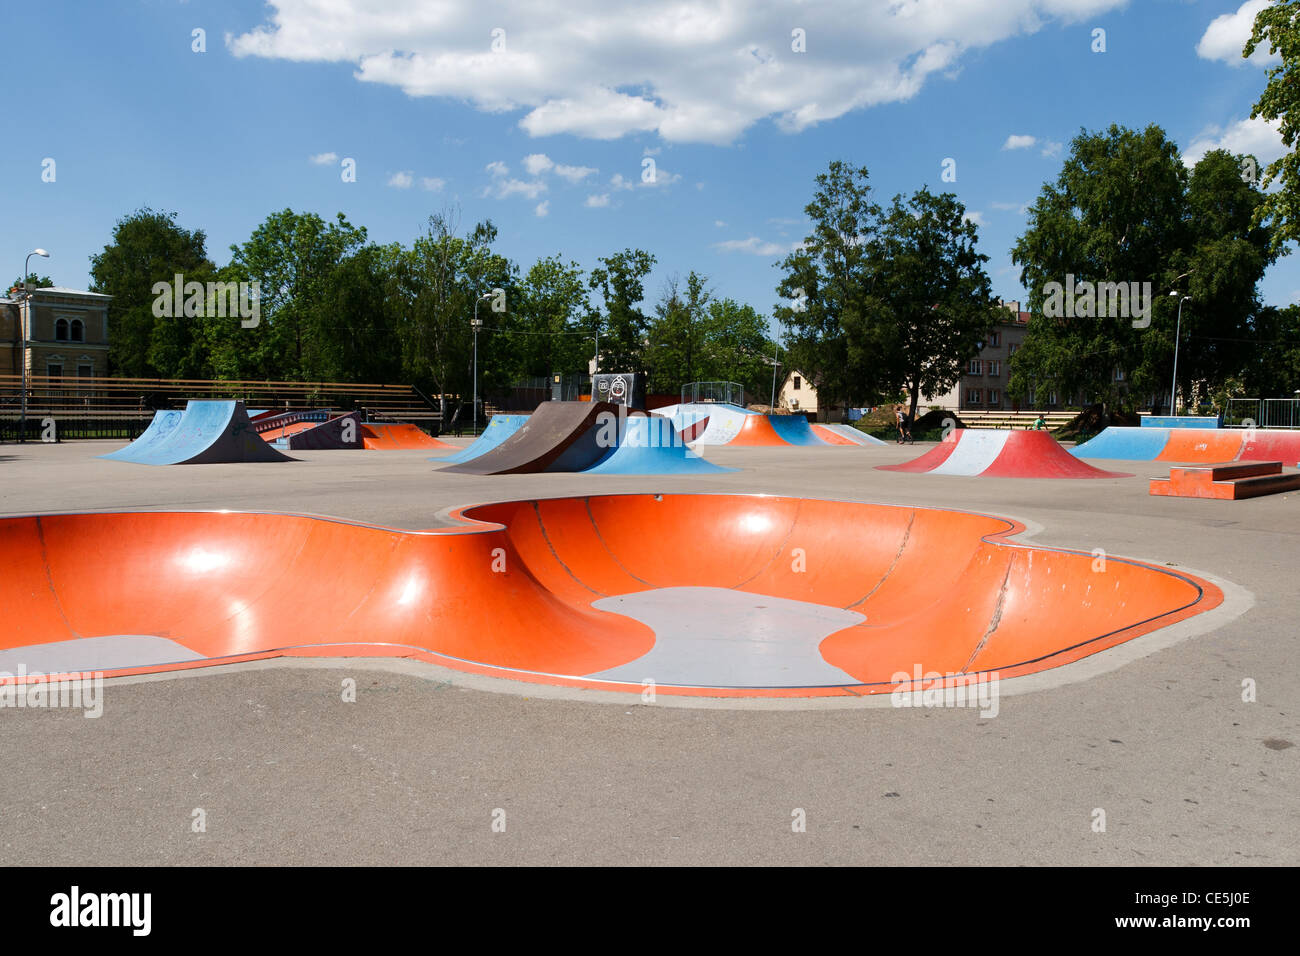 Empty skatepark with colorful ramps in sunny day - Stock Image